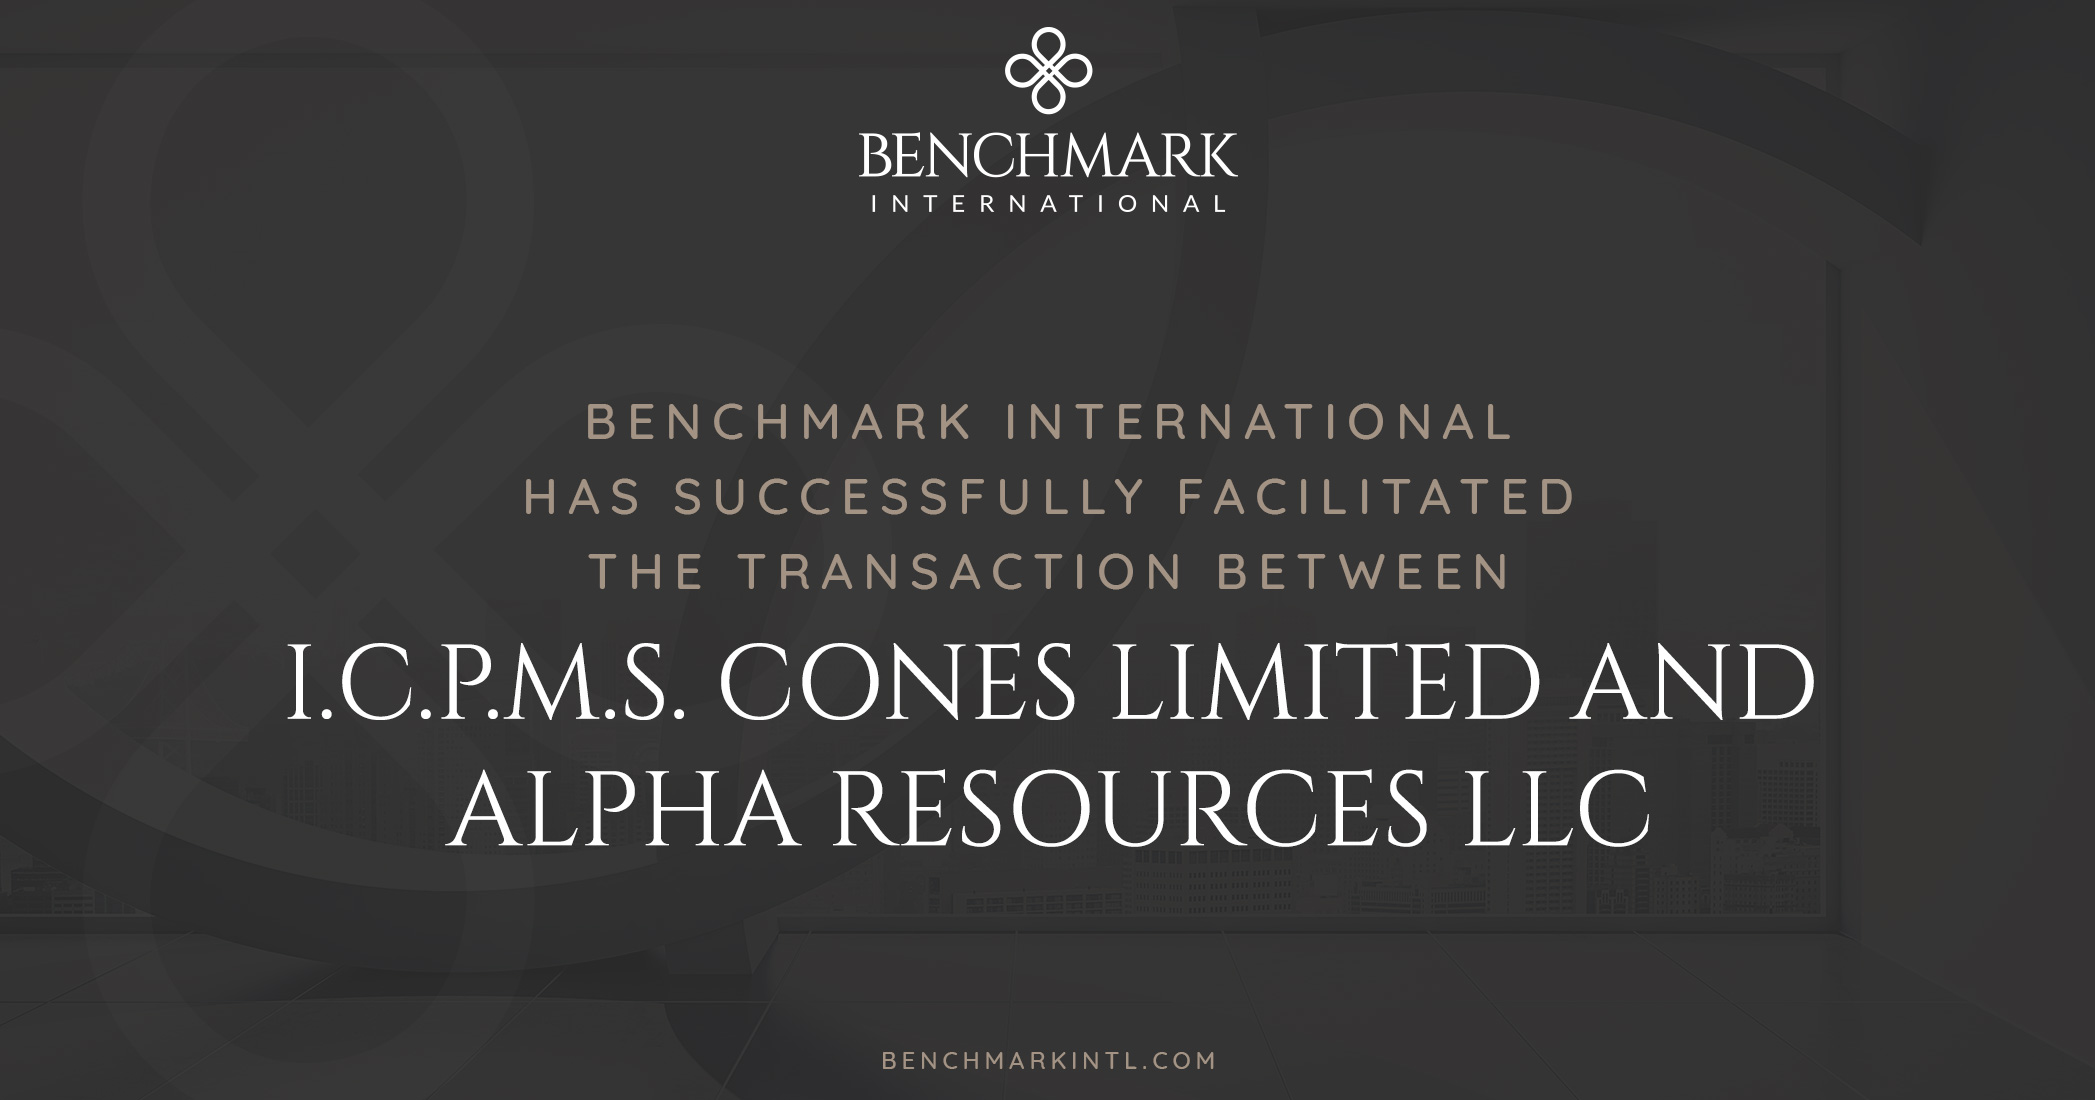 Benchmark International Completes the Partial Sale of I.C.P.M.S. Cones Limited to Alpha Resources LLC